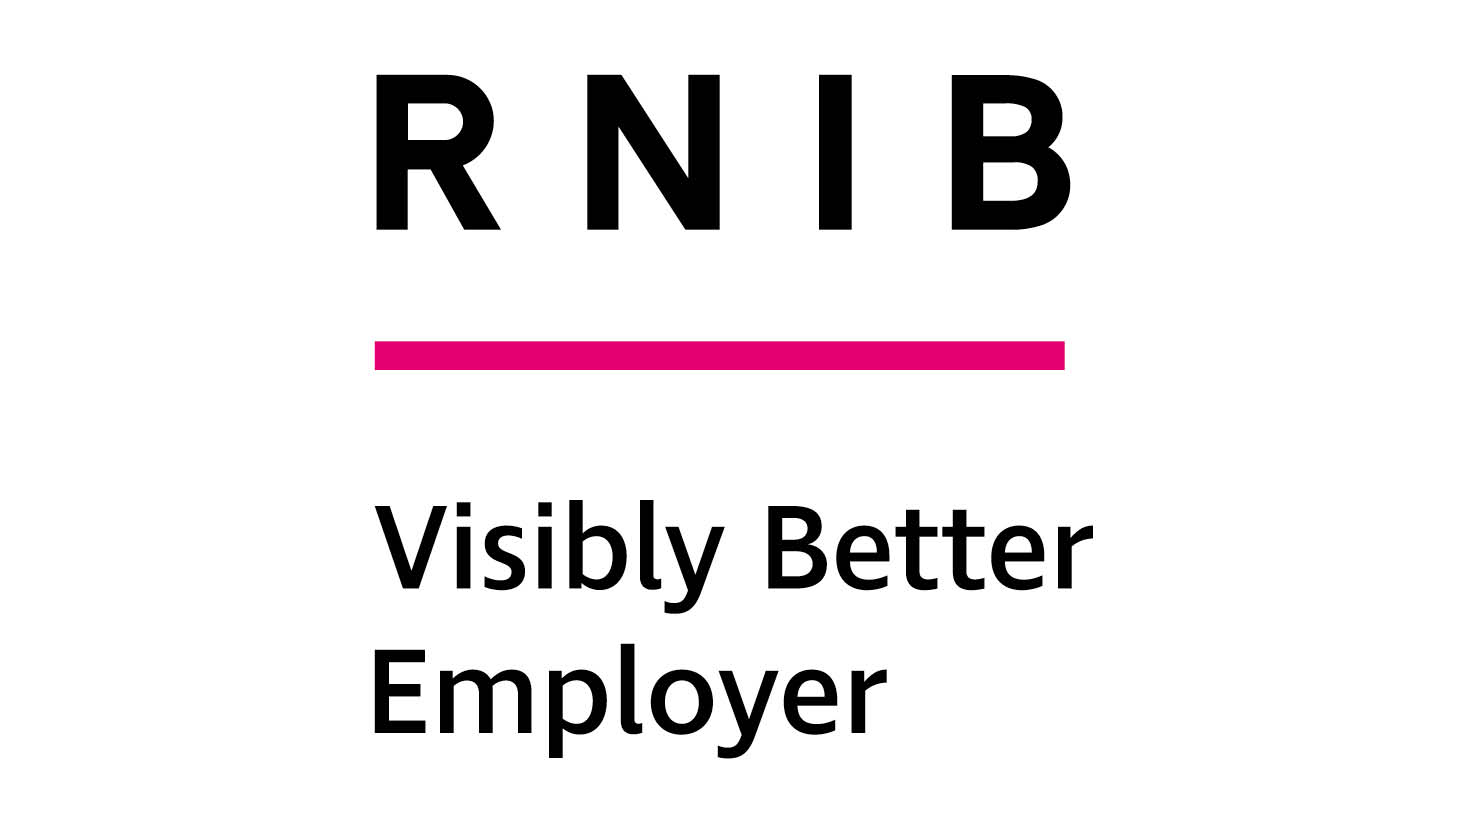 RNIB logo with words Visibly Better Employer underneath